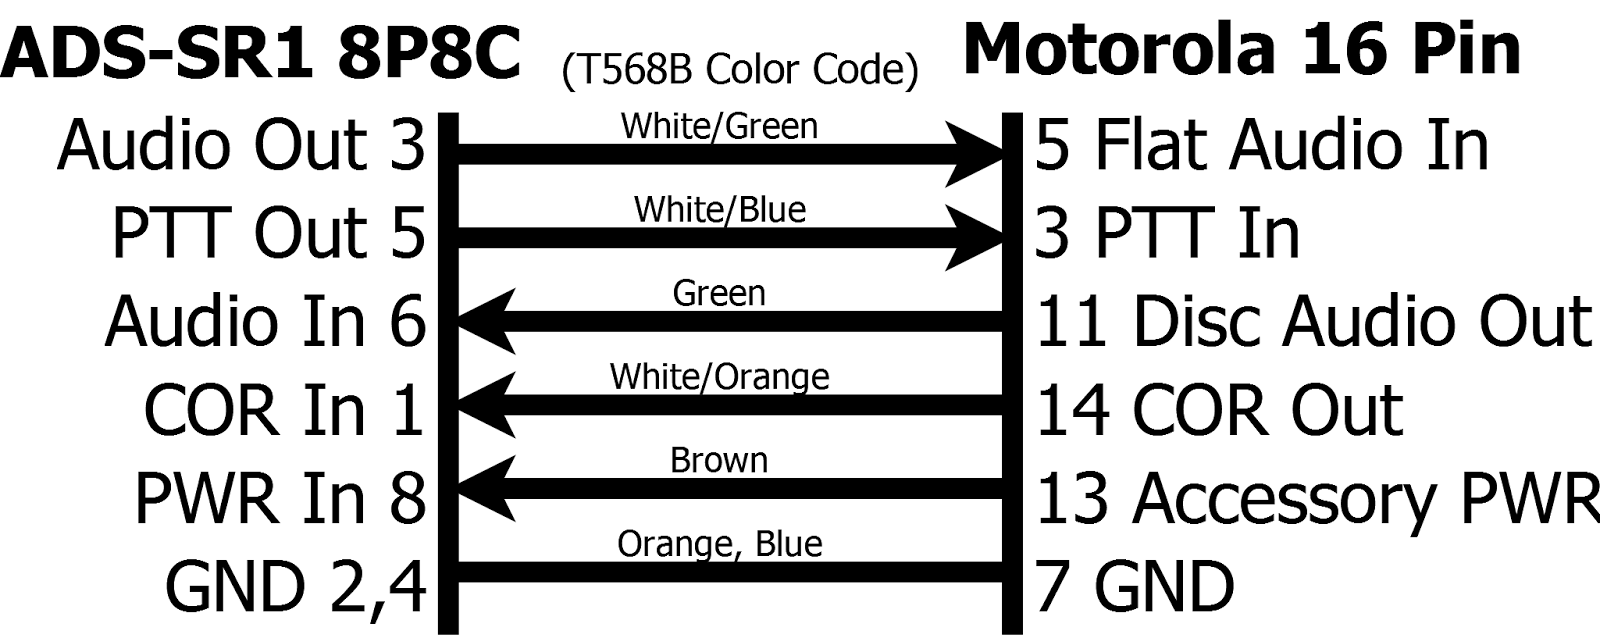 hight resolution of pinout diagram for the interface cable including the color code assuming that you crimp the ads sr1 side as if it were a standard t568b ethernet cable or